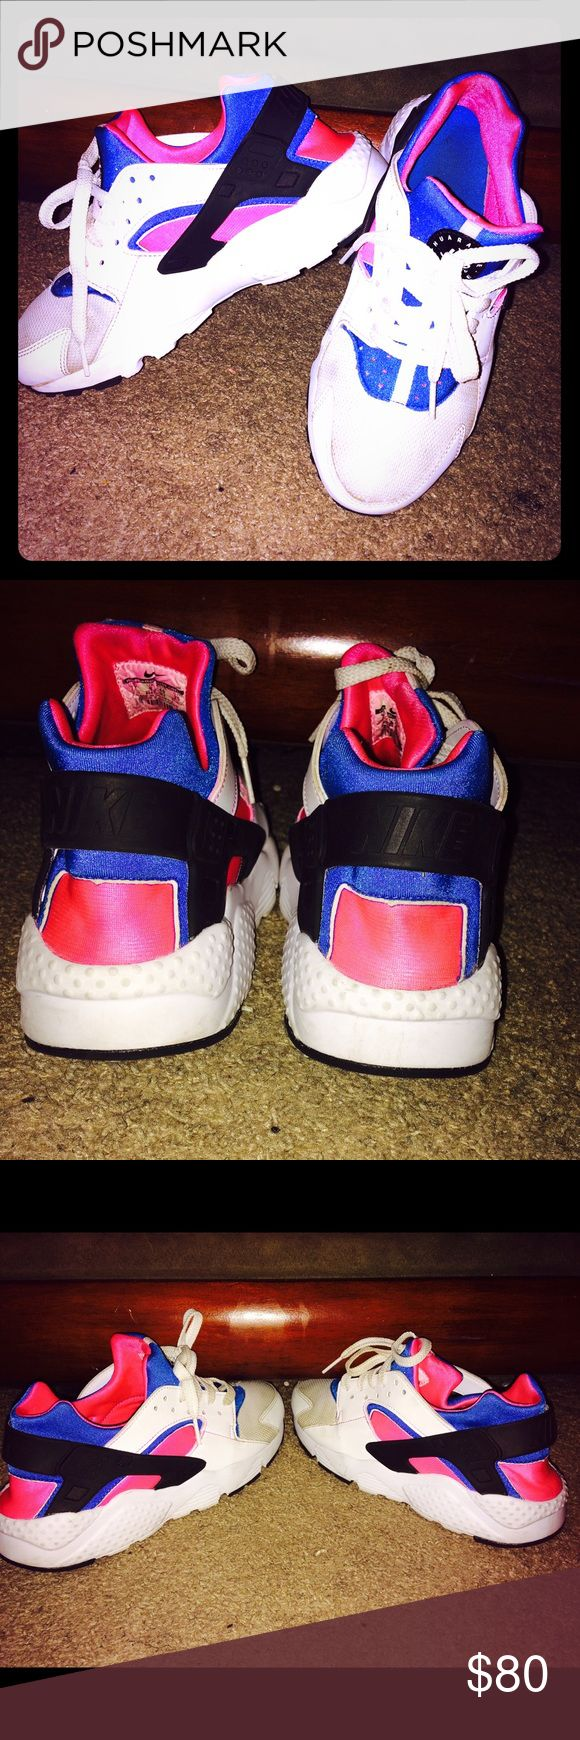 Nike huaraches pink,blue,black, and white Comfortable and only wore twice and in good condition Nike Shoes Sneakers